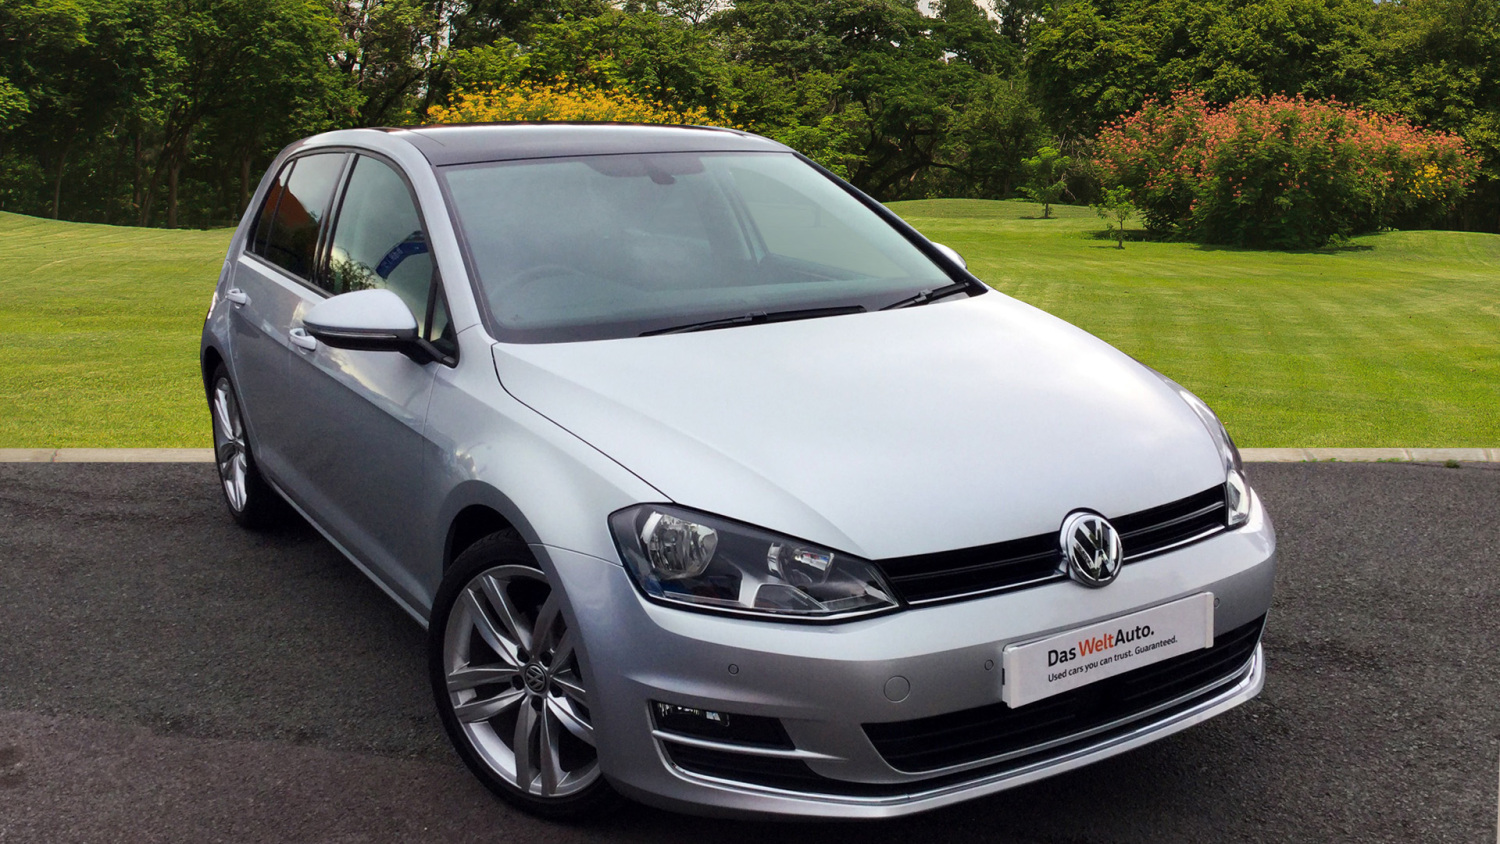 used volkswagen golf 1 4 tsi 150 gt edition 5dr dsg petrol hatchback for sale vertu volkswagen. Black Bedroom Furniture Sets. Home Design Ideas